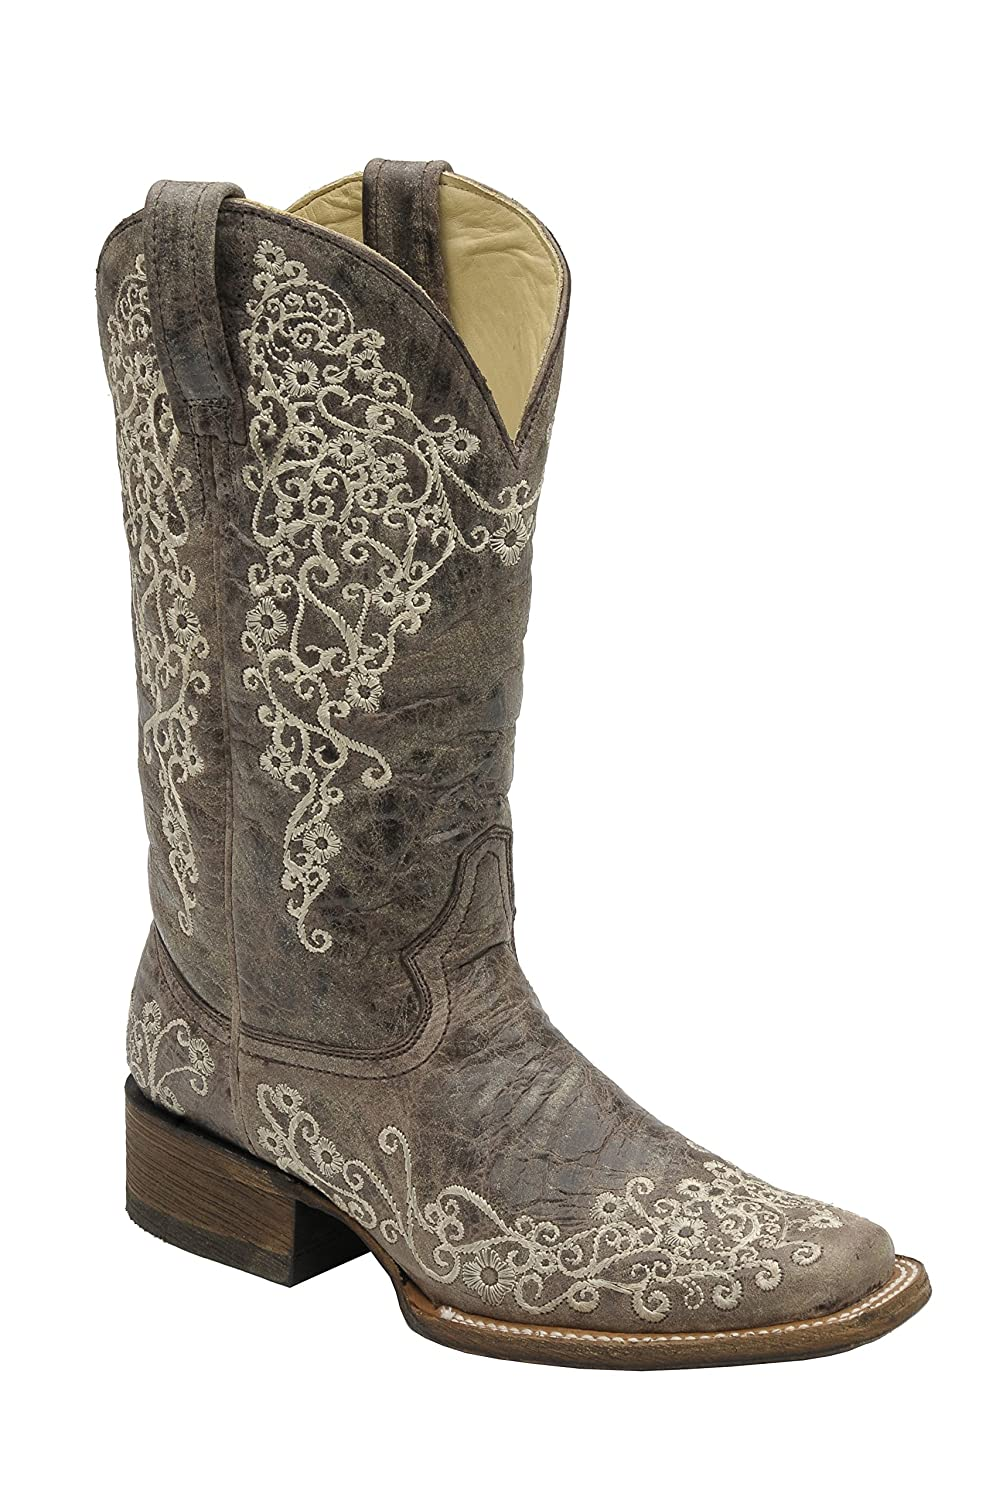 Corral Womens Brown Crater Bone Embroidery Square Toe Western Cowboy Boot B01M7X4H8H 5.5 B(M) US|Brown